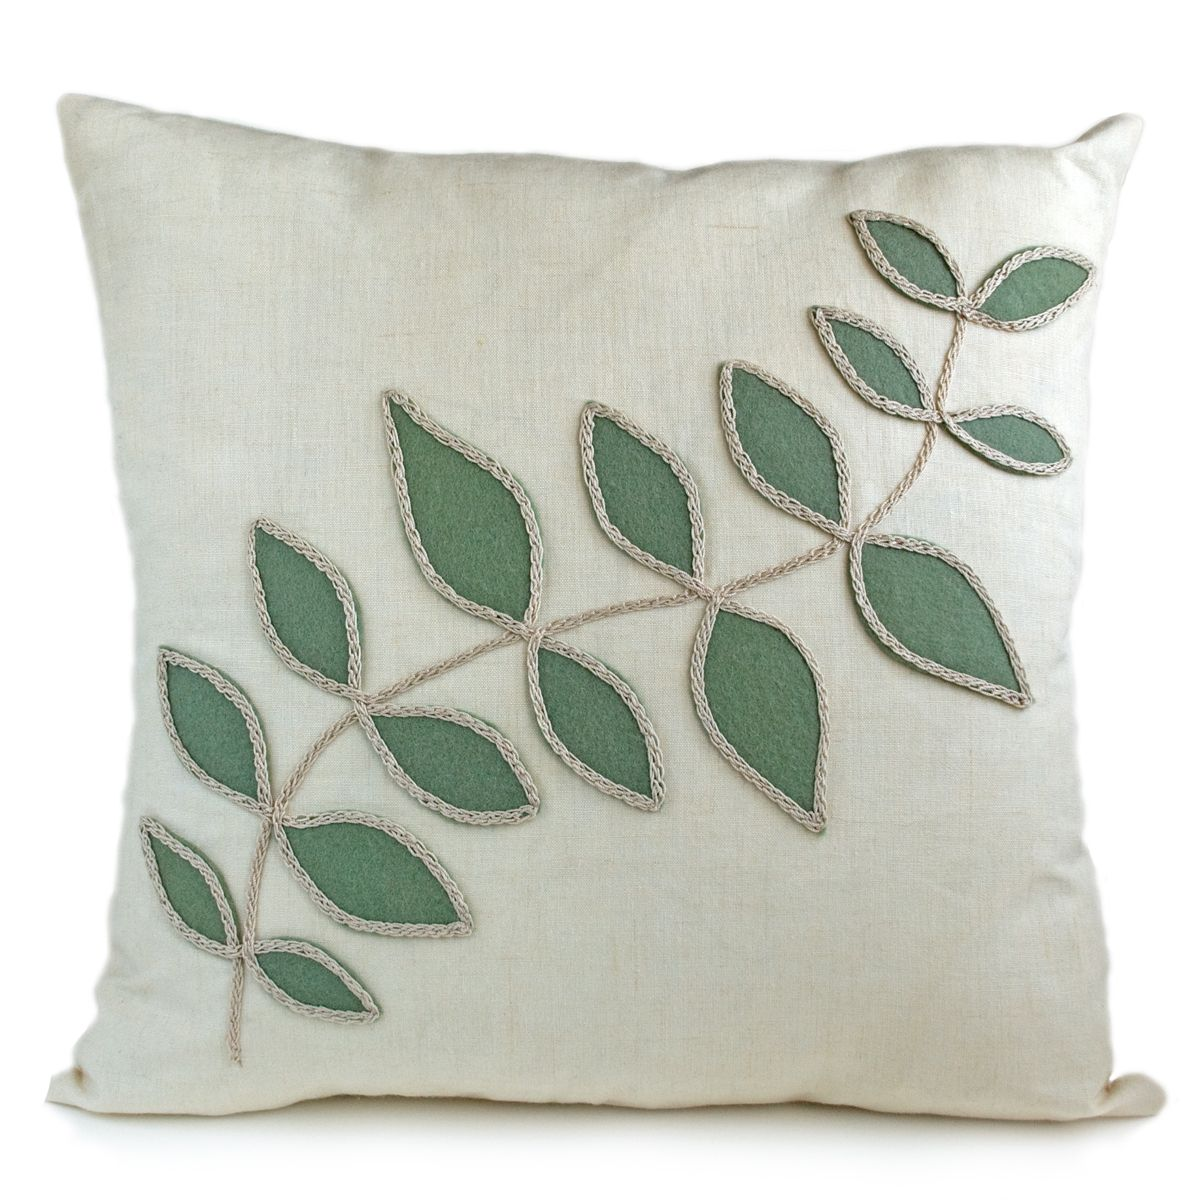 Nutmeg and Sage homeware